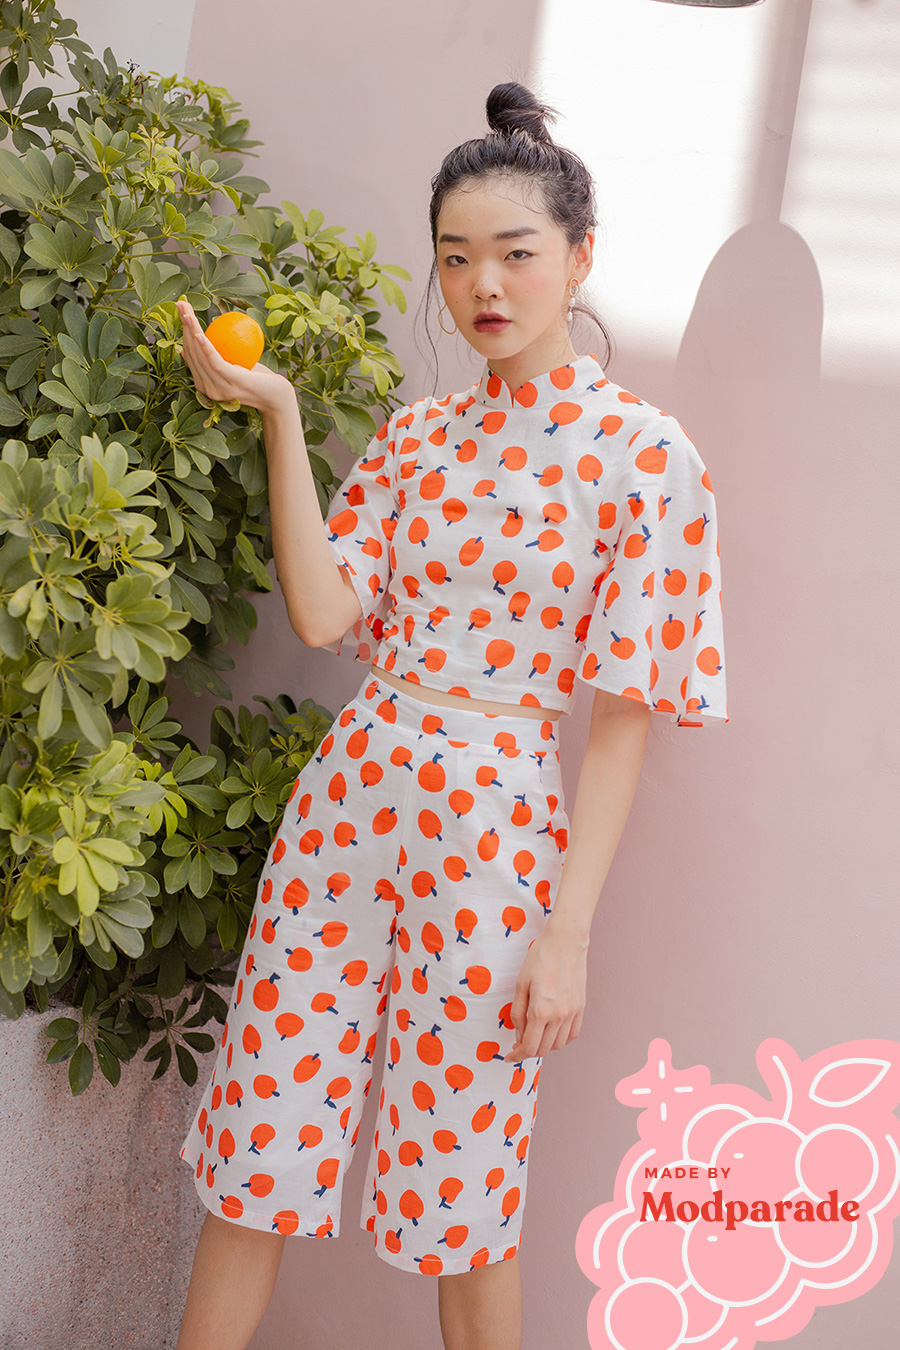 CHOIRI 2PC SET - TANGERINE [BY MODPARADE]